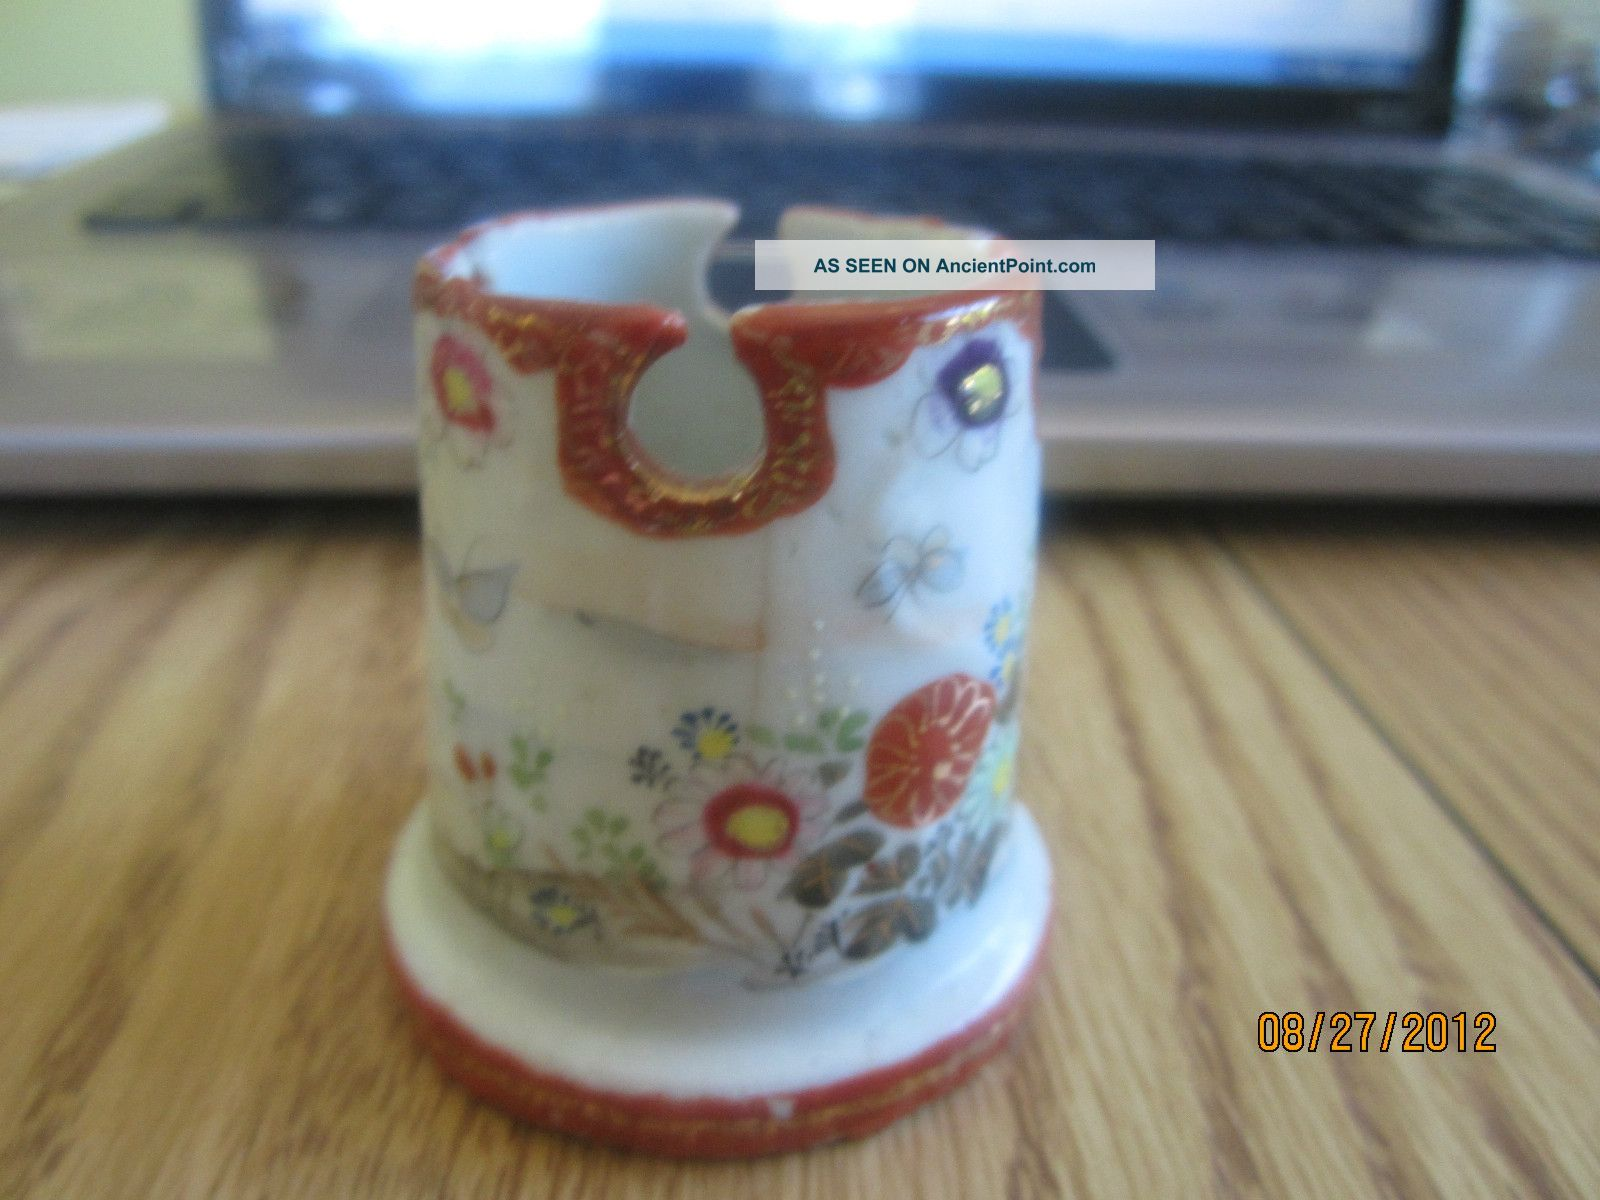 Antique Asian Pottery Small Vase Or Holder Cup Hand Painted Flowers on gold sg, gold post, gold lv, gold mc, gold greenland, gold ad, gold cat, gold co, gold na, gold ax,